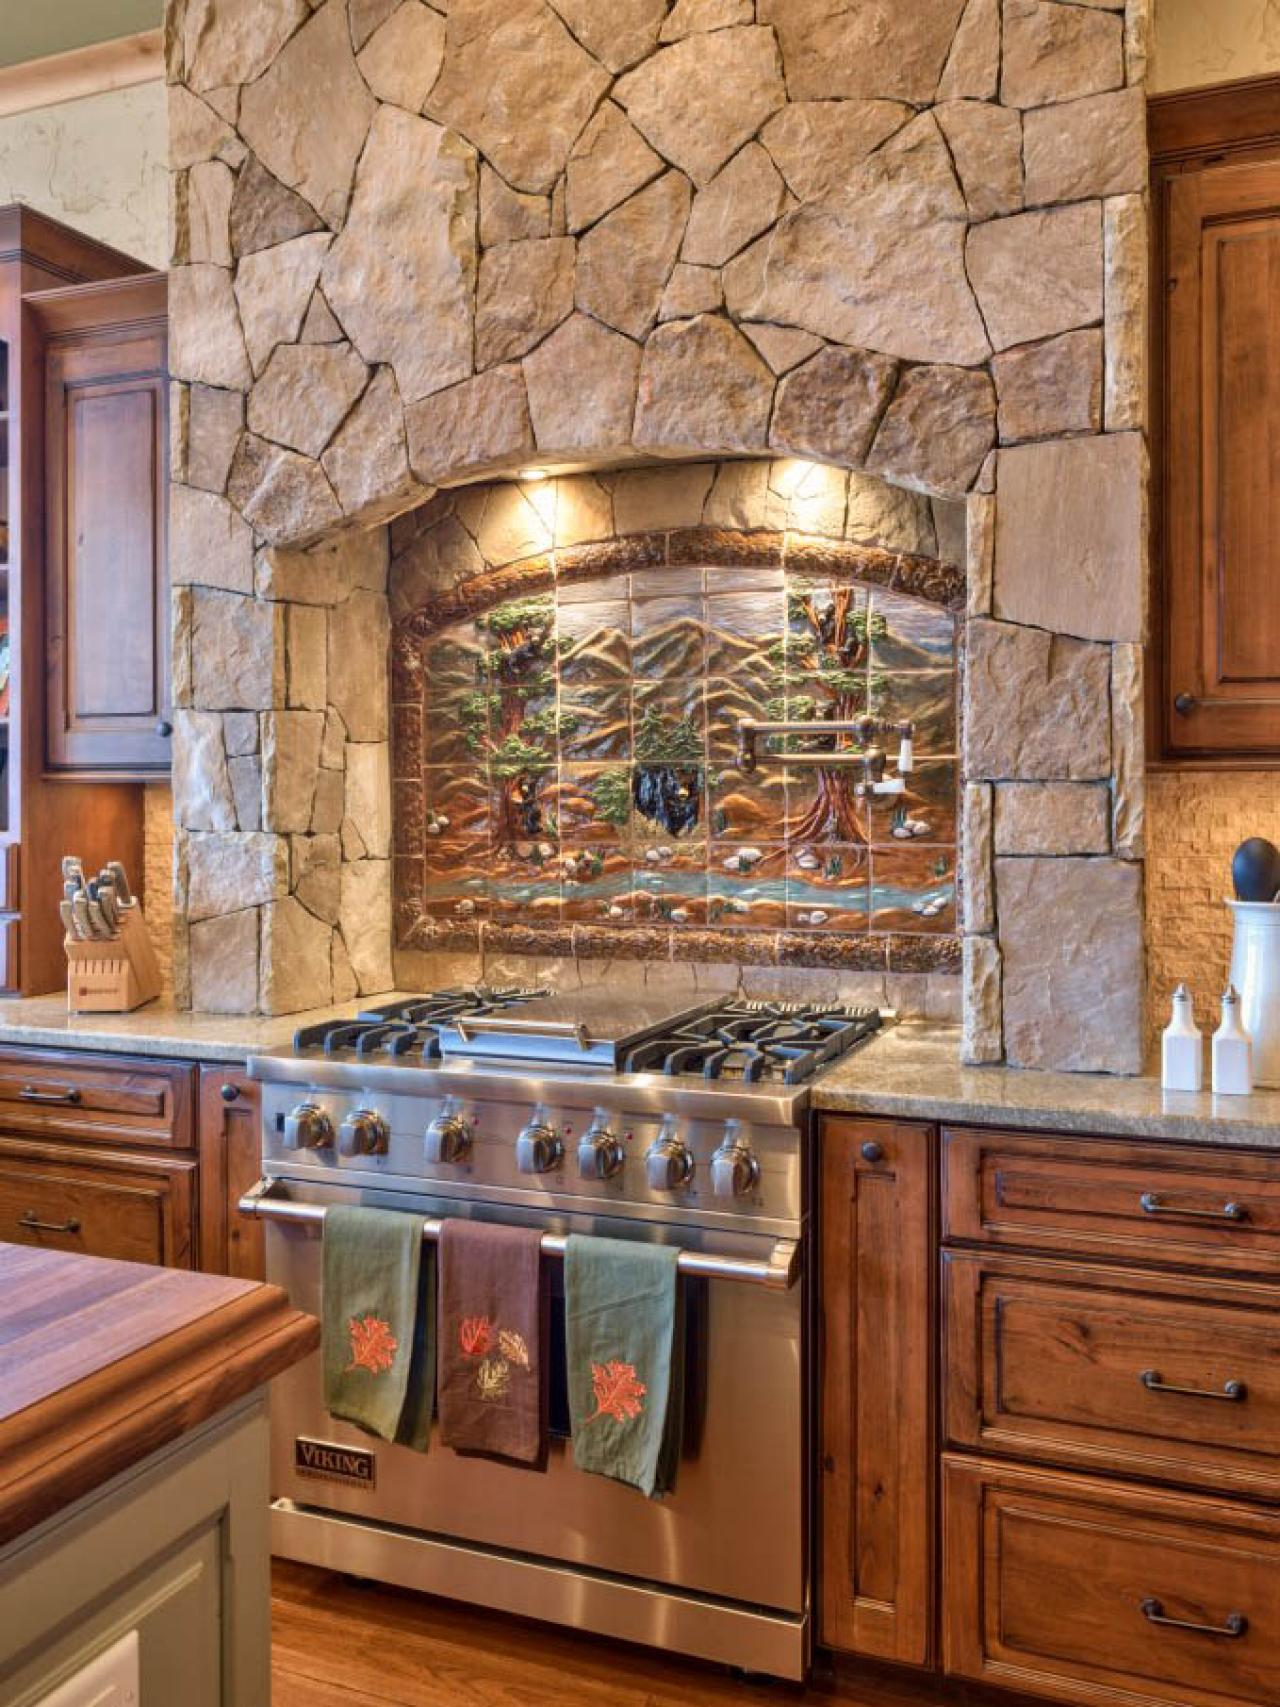 Rustic Stone Kitchen With Country Appeal Heather Guss Hgtv